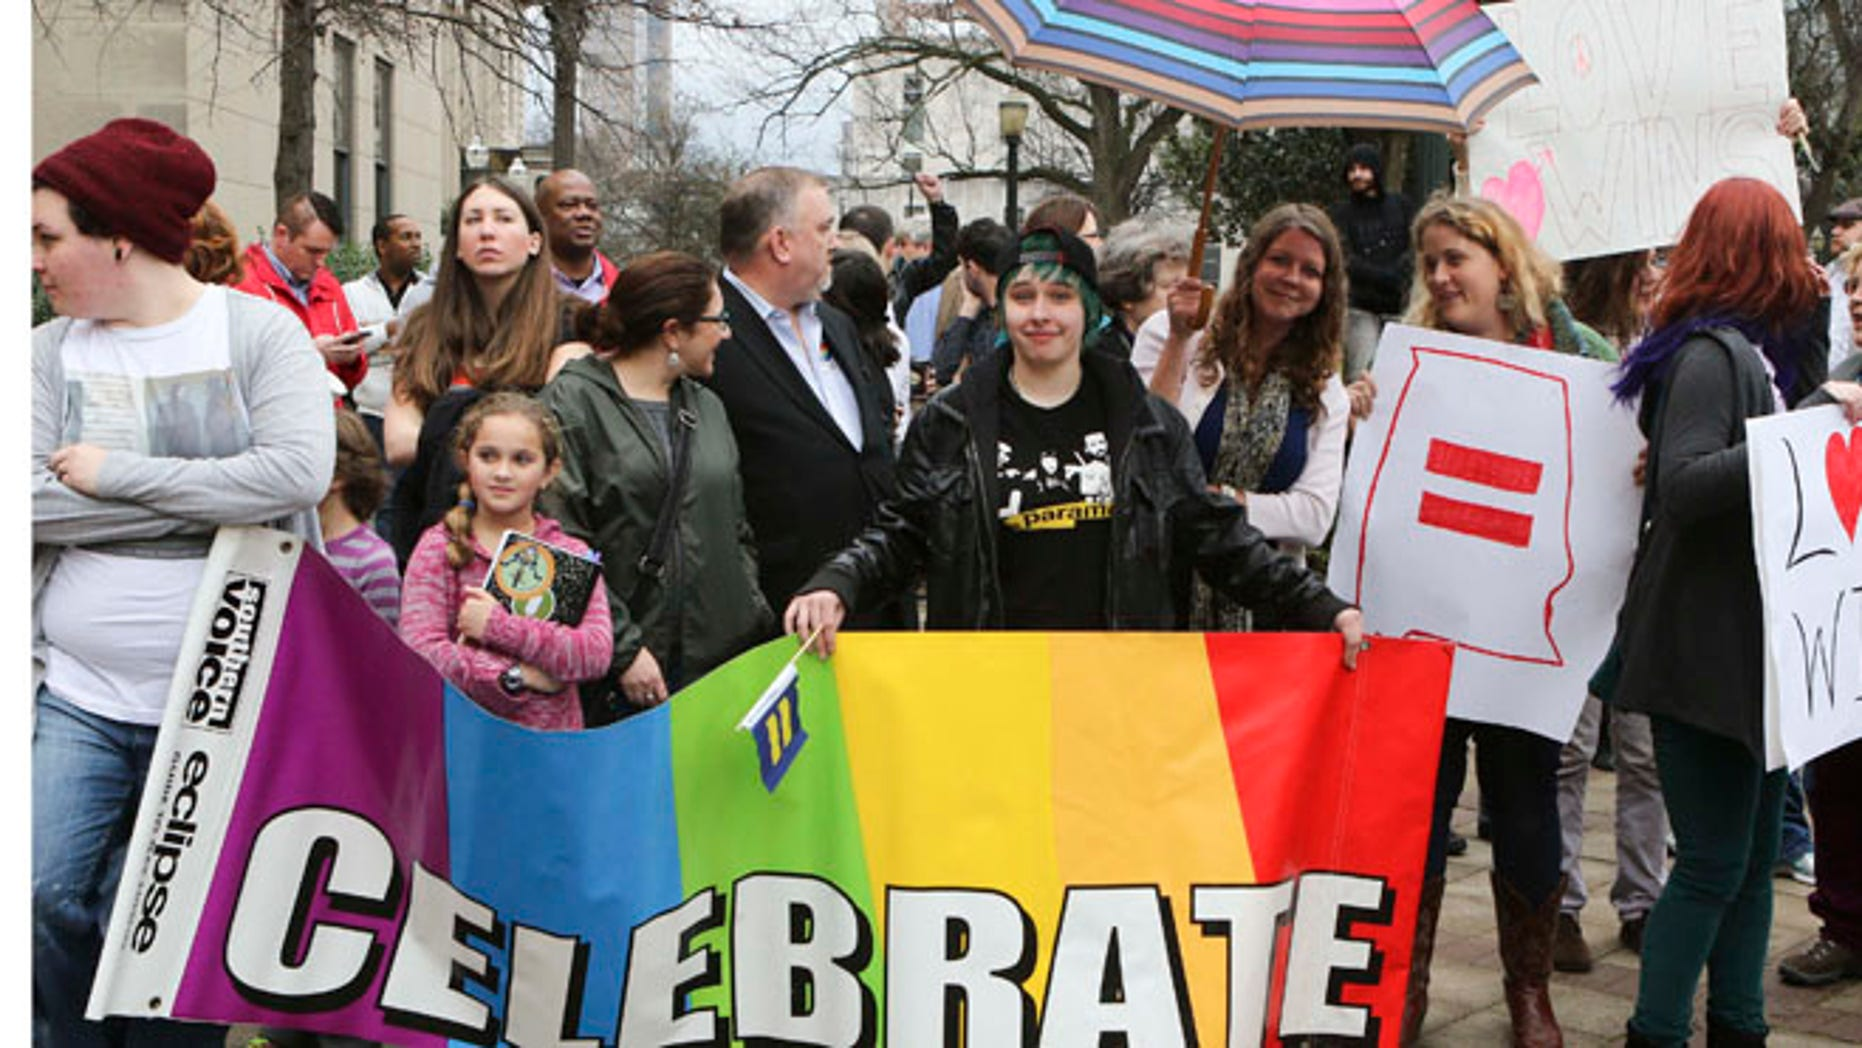 Feb. 9, 2015: Supporters of same-sex marriage hold signs outside the Jefferson County Courthouse in Birmingham, Alabama.